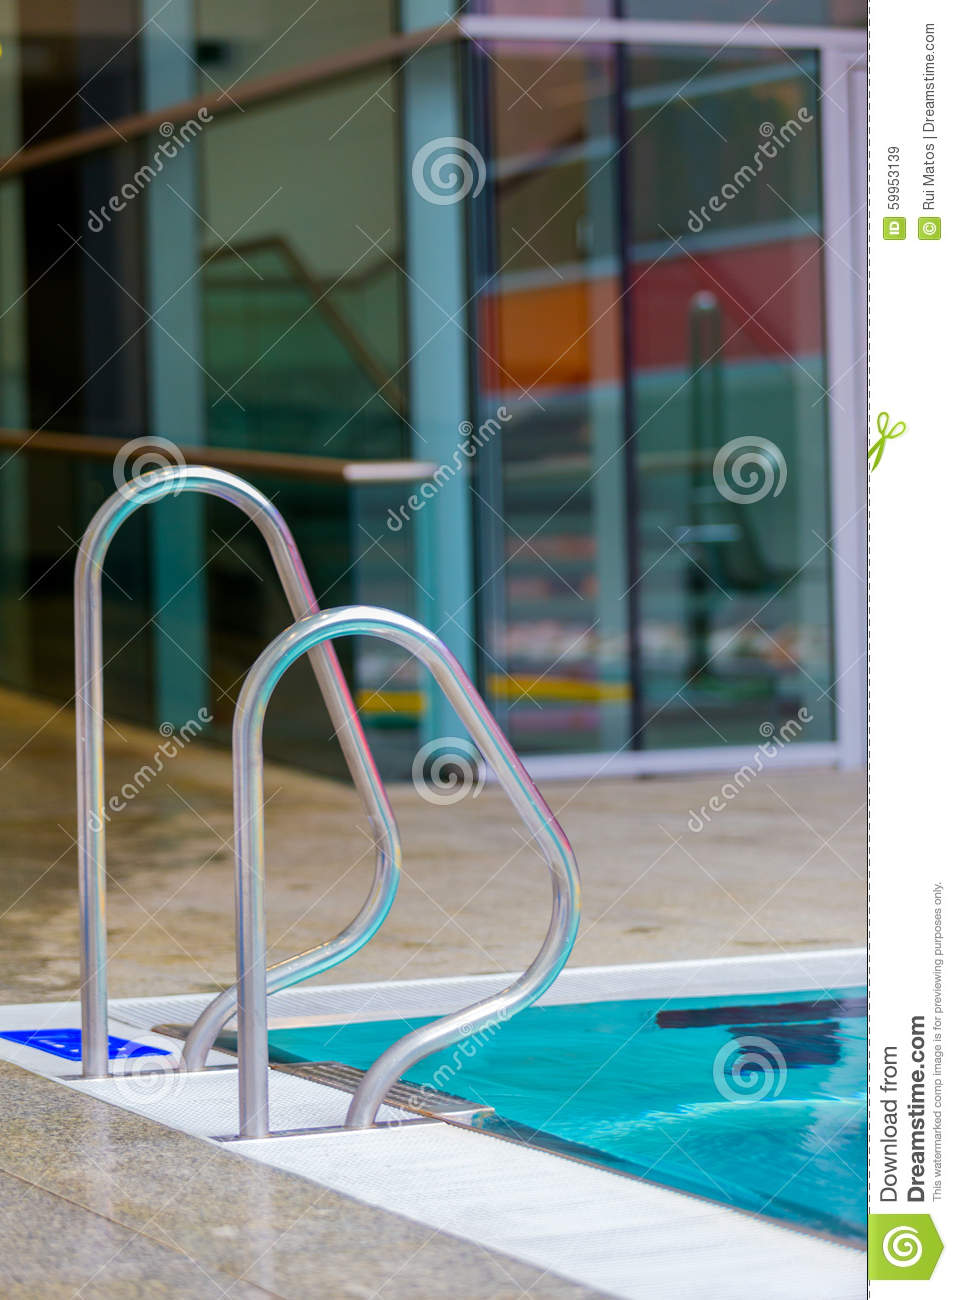 Indoor swimming pool stock image. Image of inside, exercise - 59953139